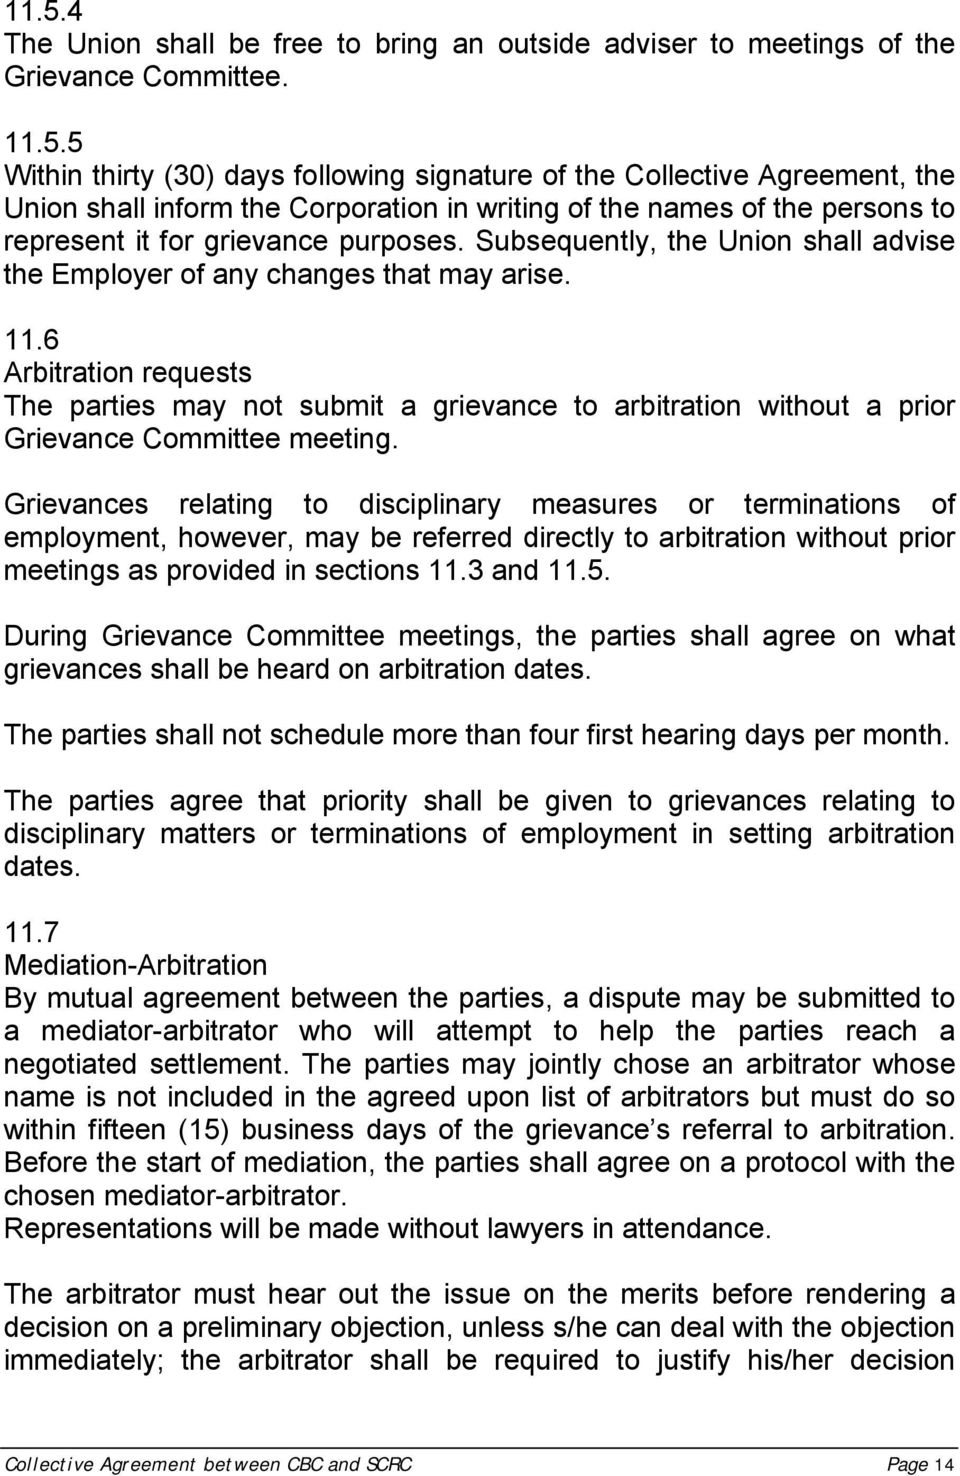 6 Arbitration requests The parties may not submit a grievance to arbitration without a prior Grievance Committee meeting.